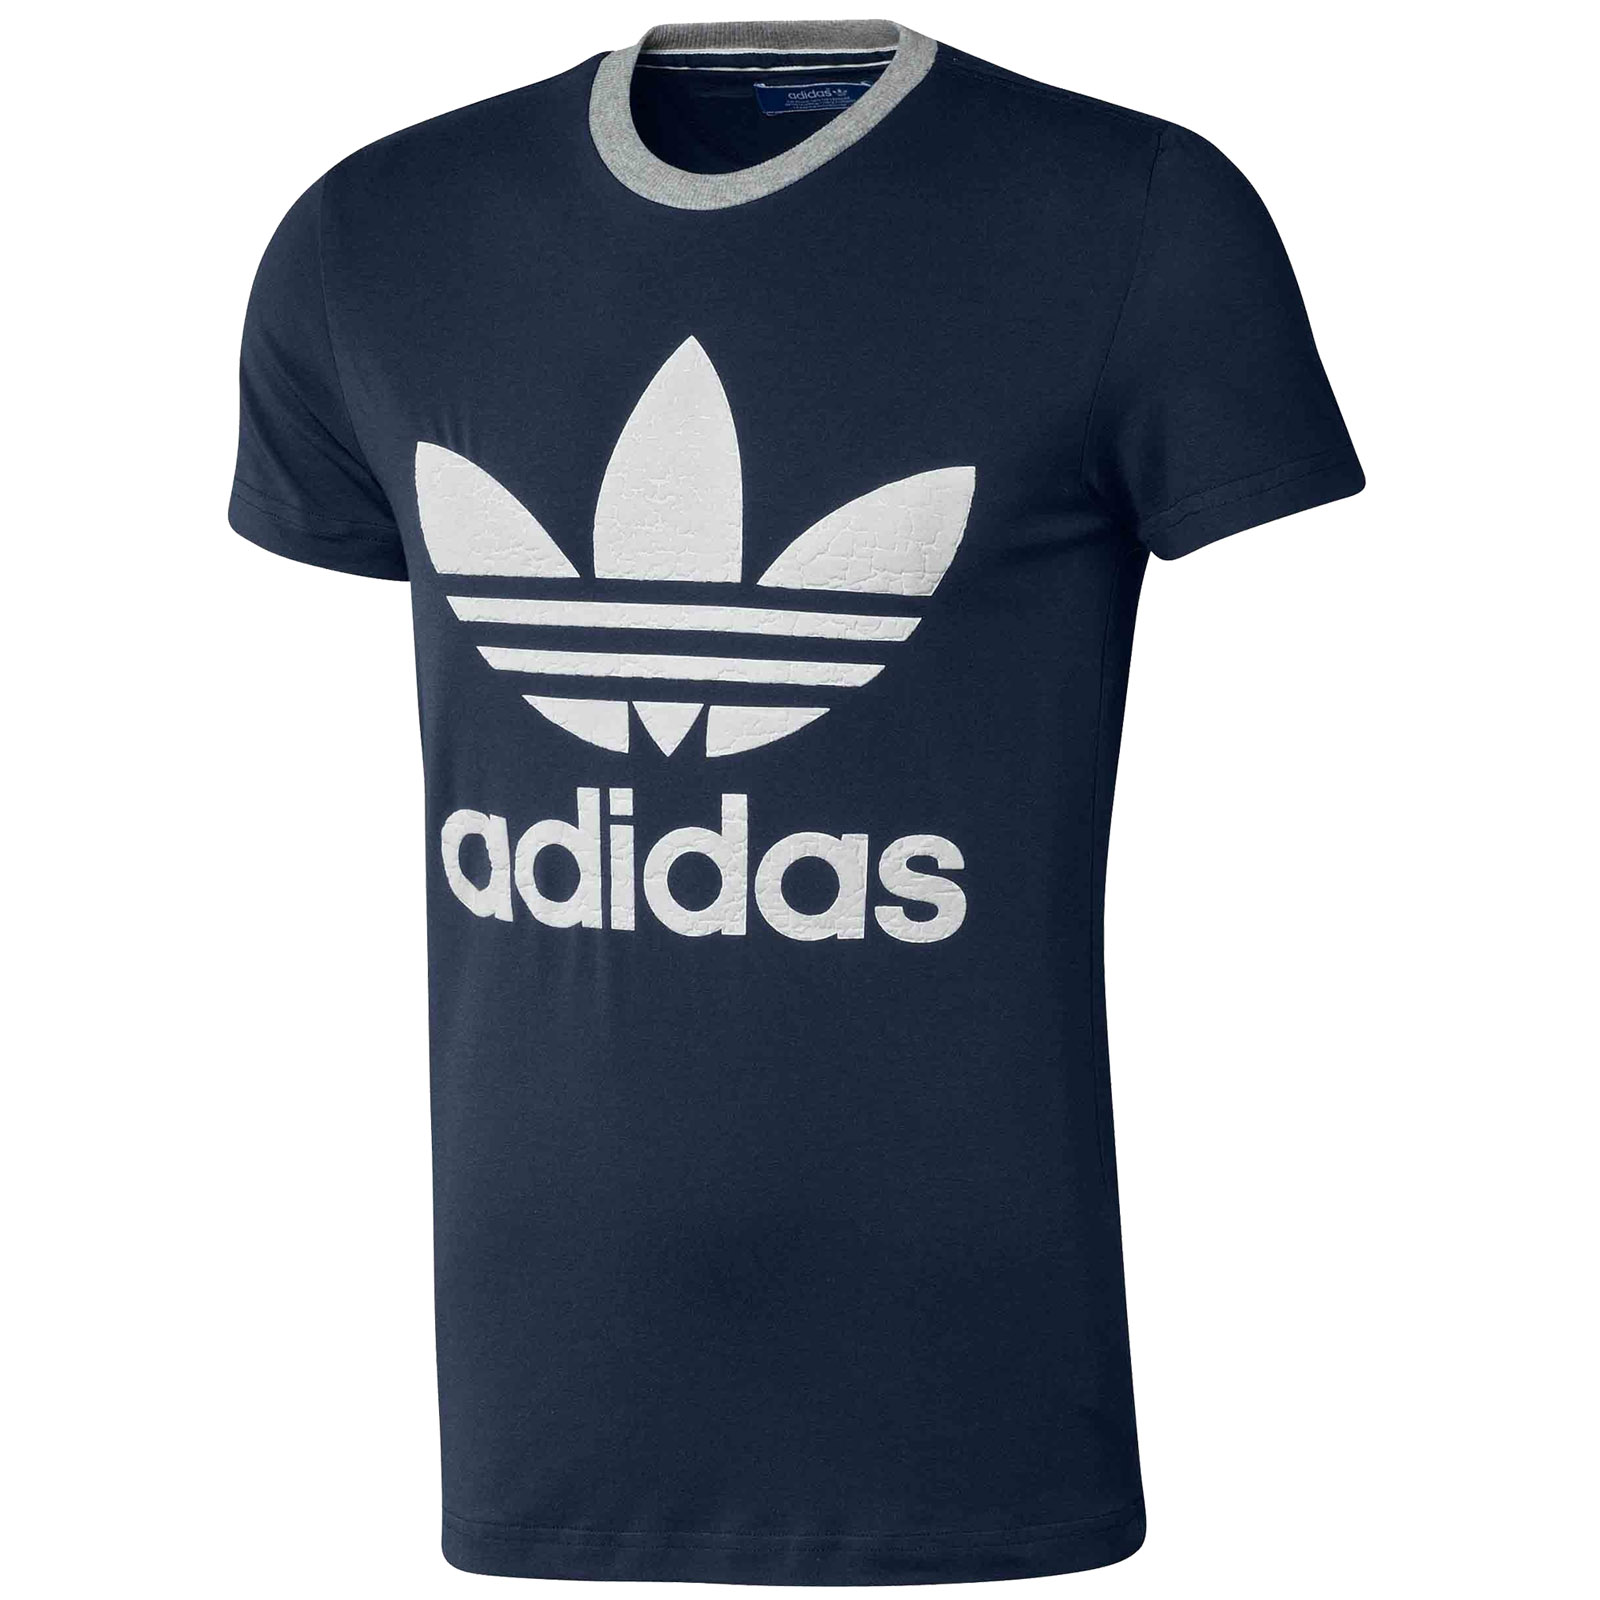 Adidas originals mens trefoil logo med t shirt short for Adidas long sleeve t shirt with trefoil logo